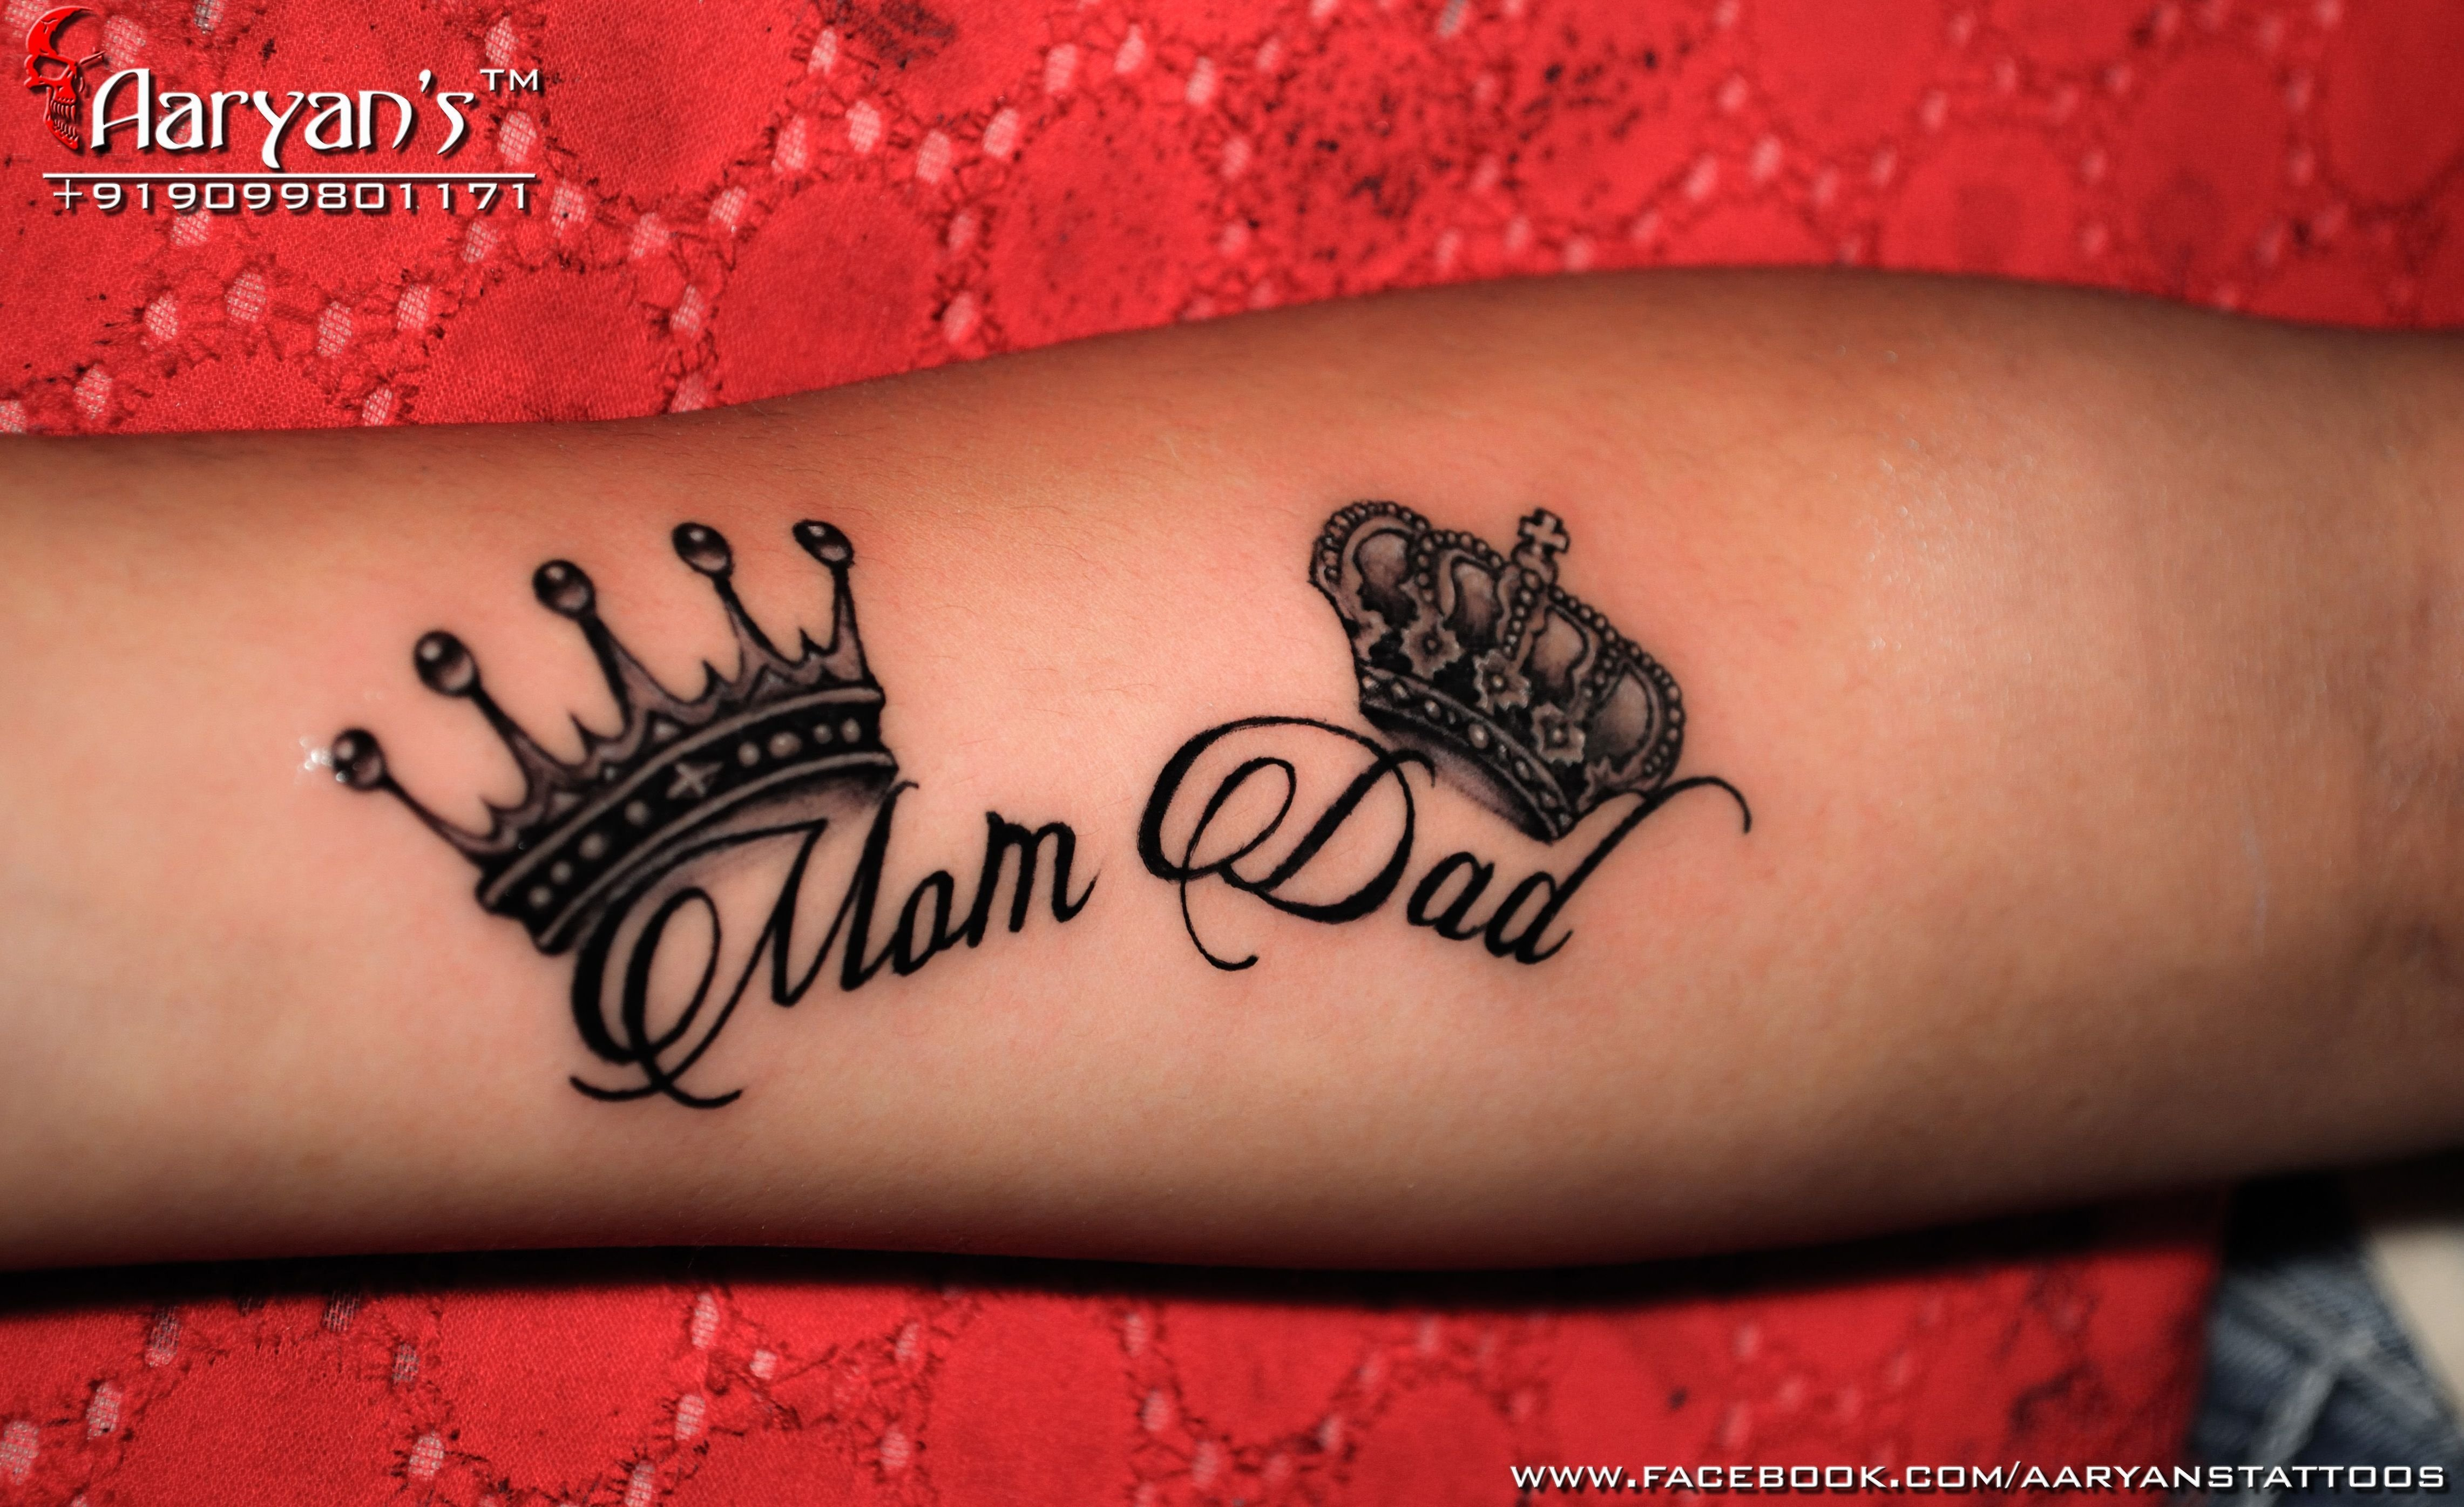 10 Unique Mom And Dad Tattoos Ideas great concept dedicated to mom 2020